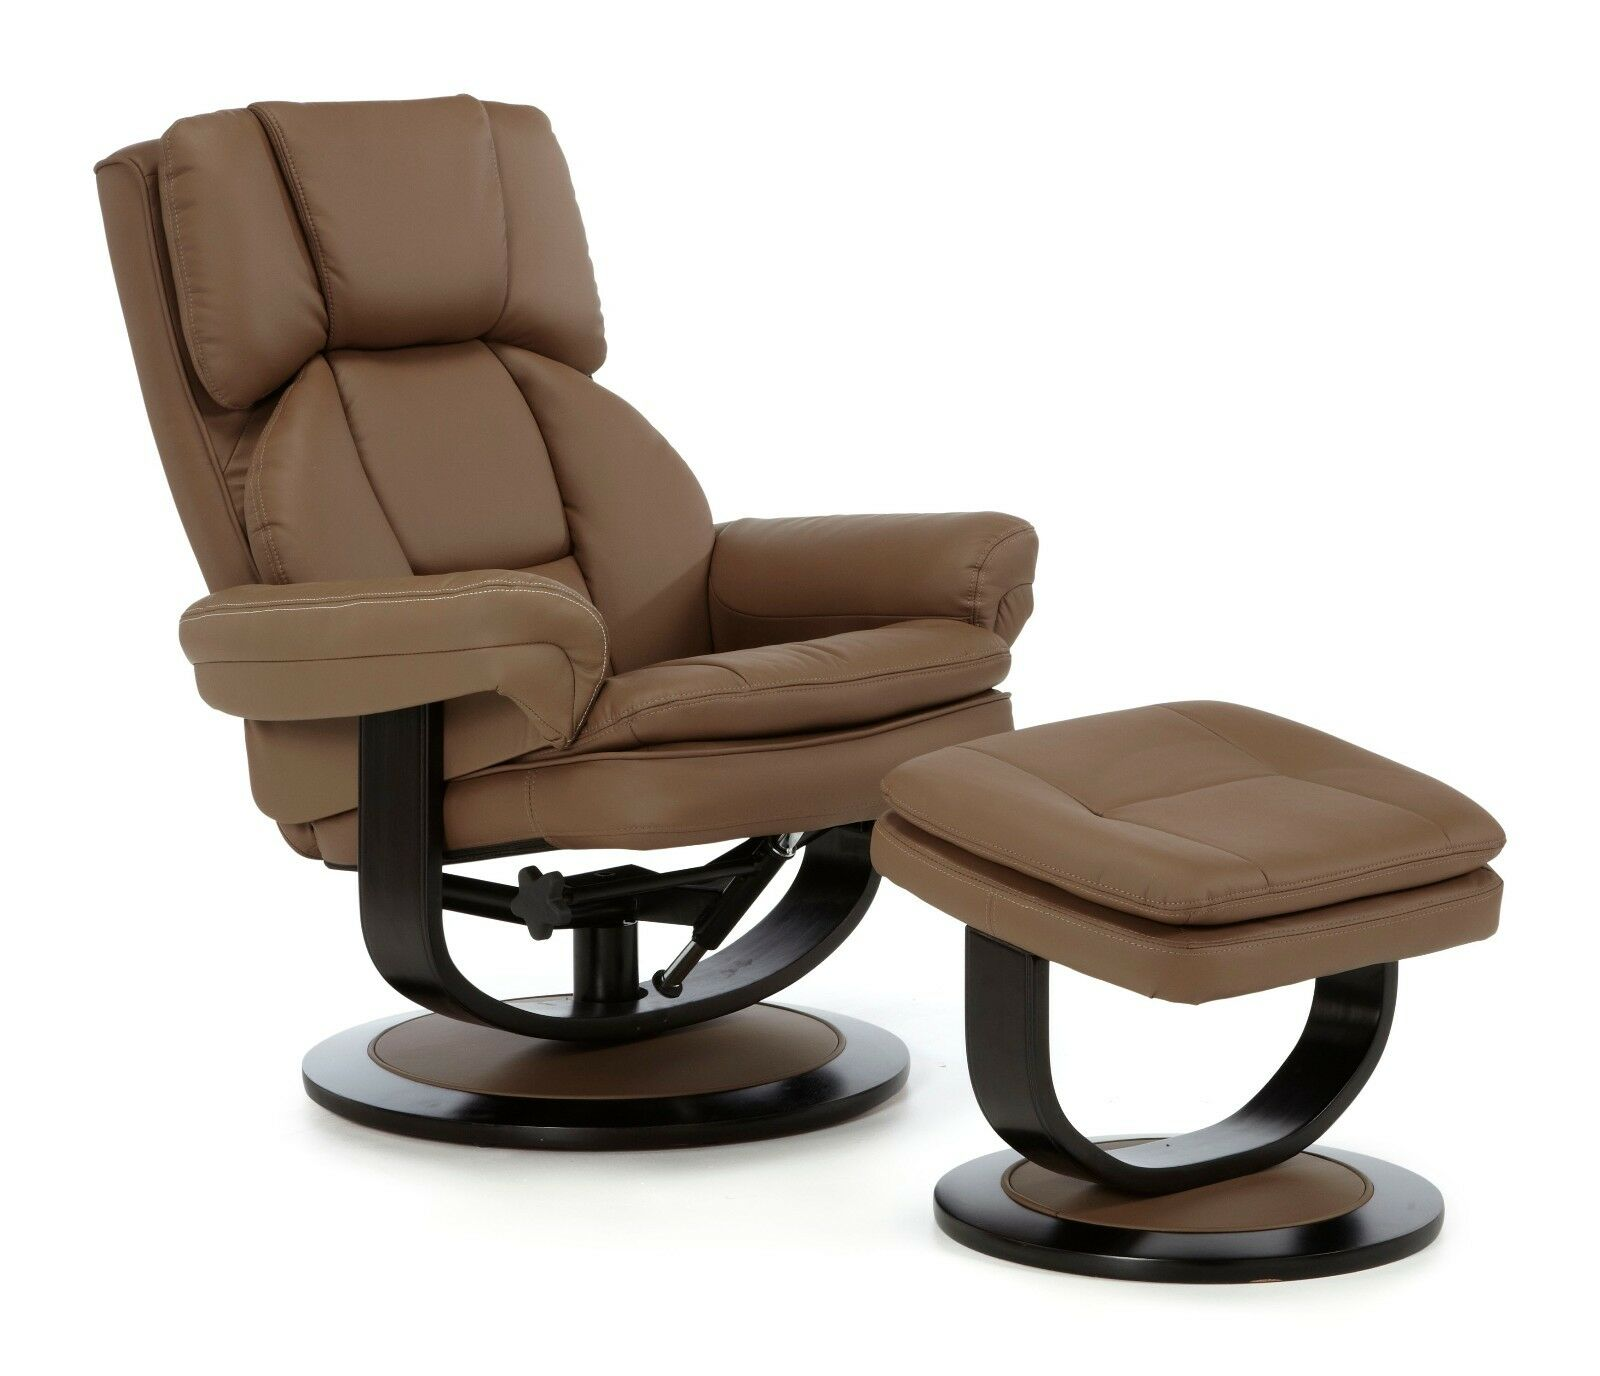 swivel reclining chairs uk best ergonomic chair for back pain upton luxury recliner armchair free